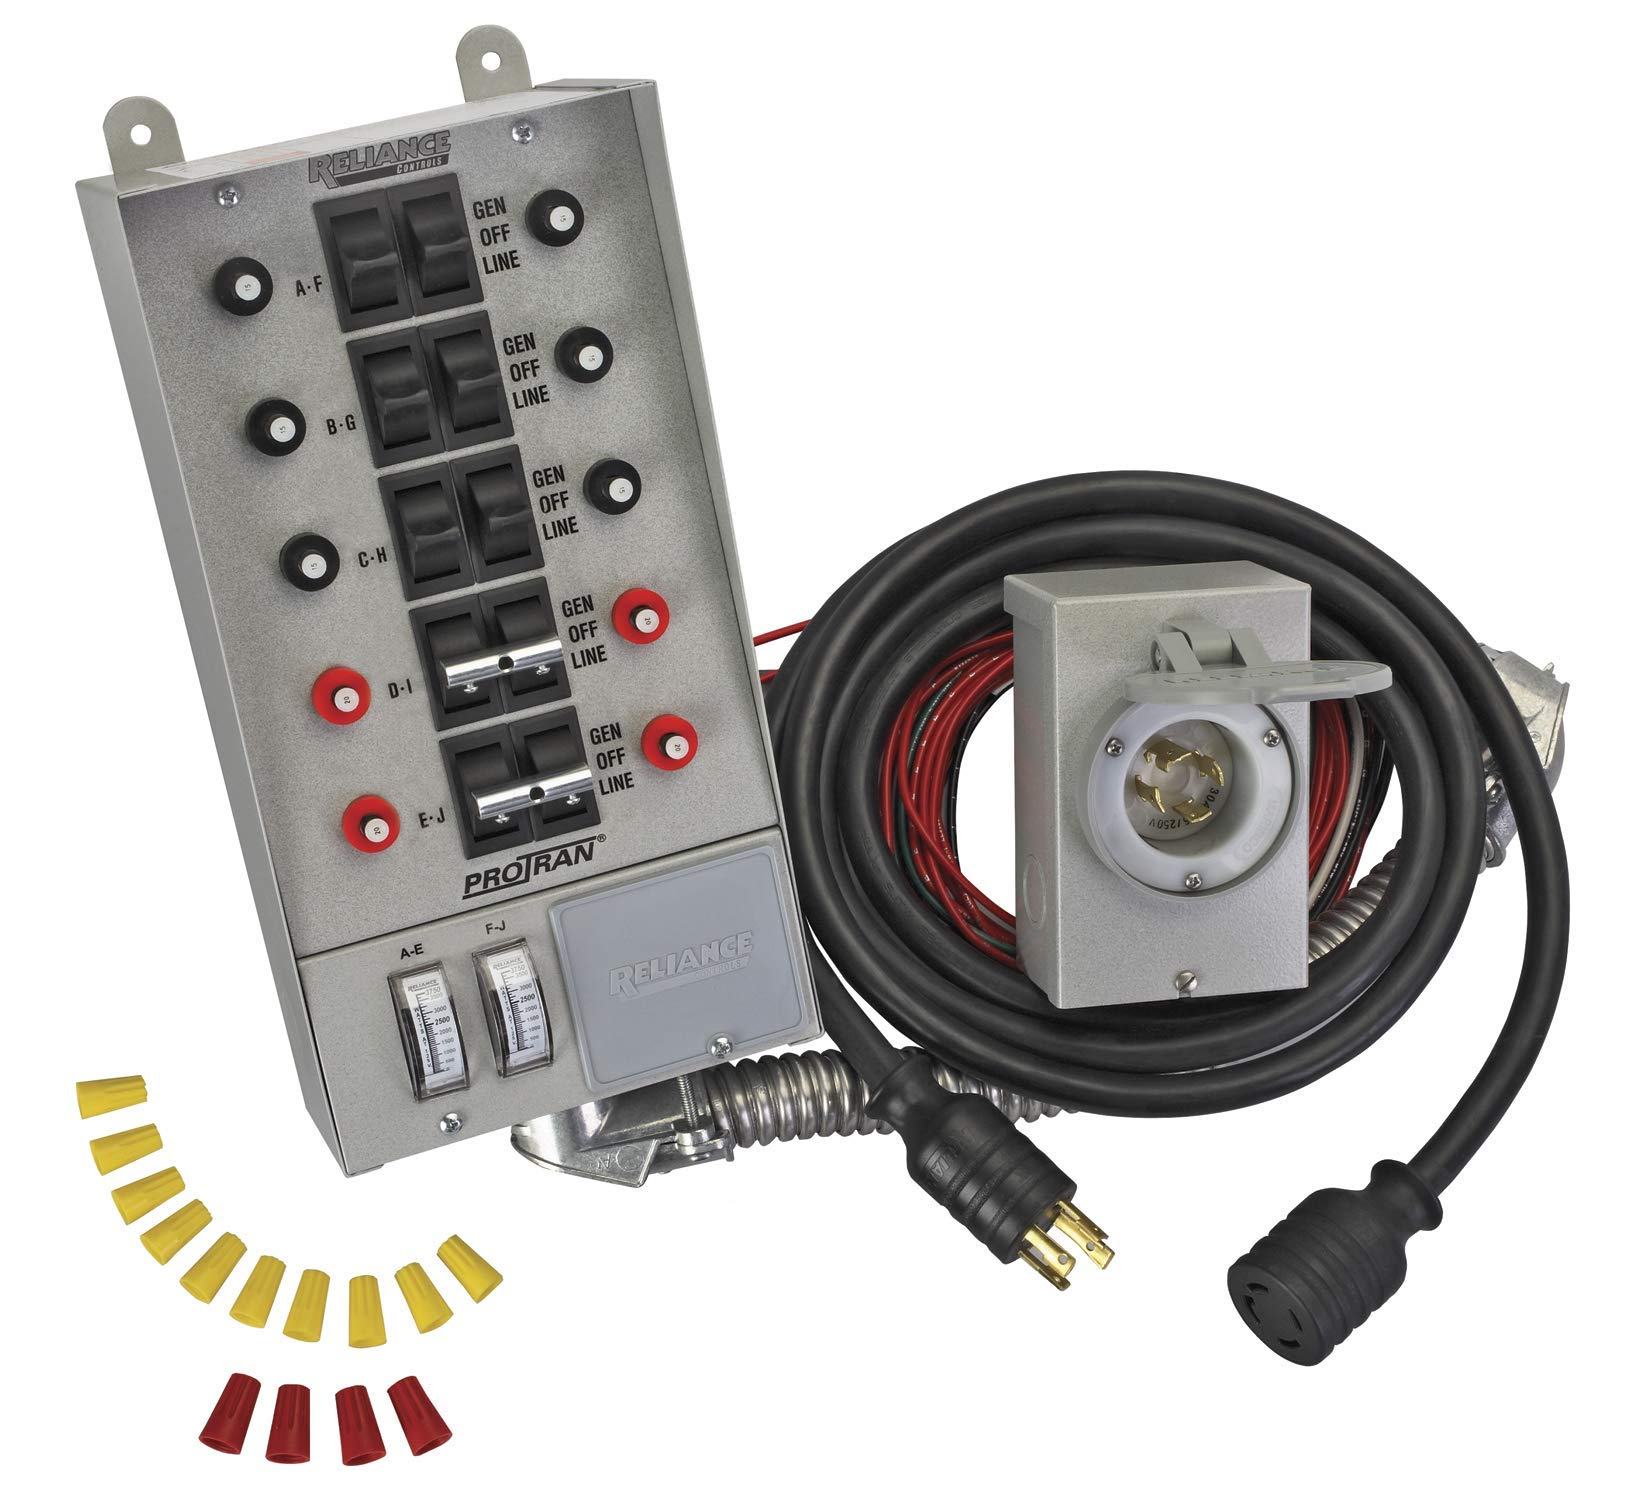 Reliance Controls Corporation 31410CRK 30 Amp 10-Circuit Pro/Tran Transfer Switch Kit for Generators Up to 7,500 Running Watts (Renewed) by Reliance Products